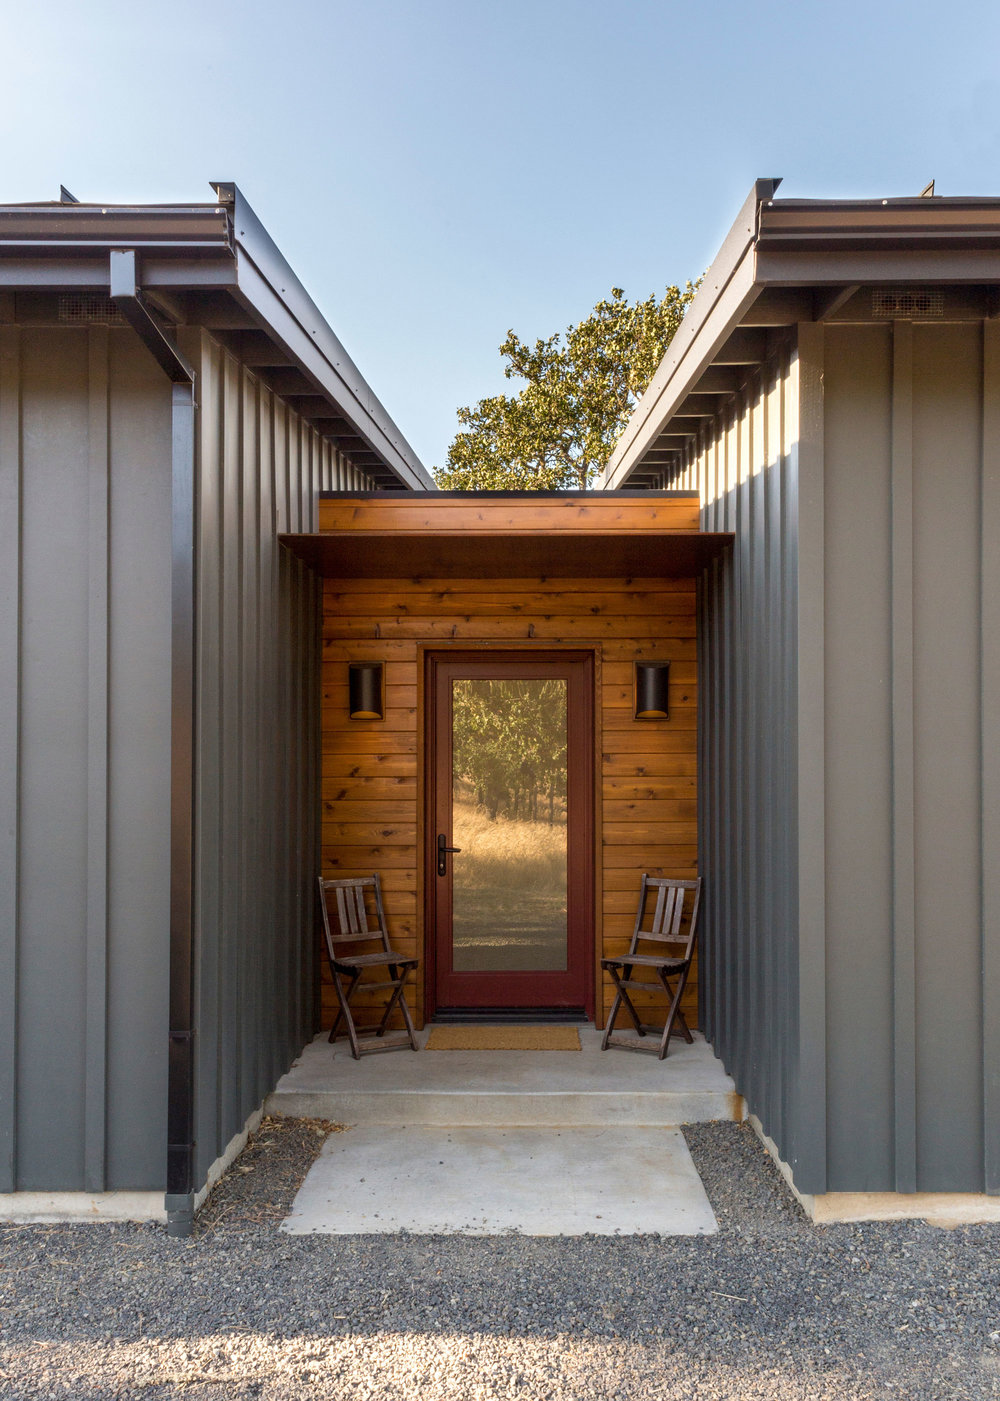 This house had to be resilient. The selected materials work with everything that life throws at it with minimal maintenance. -